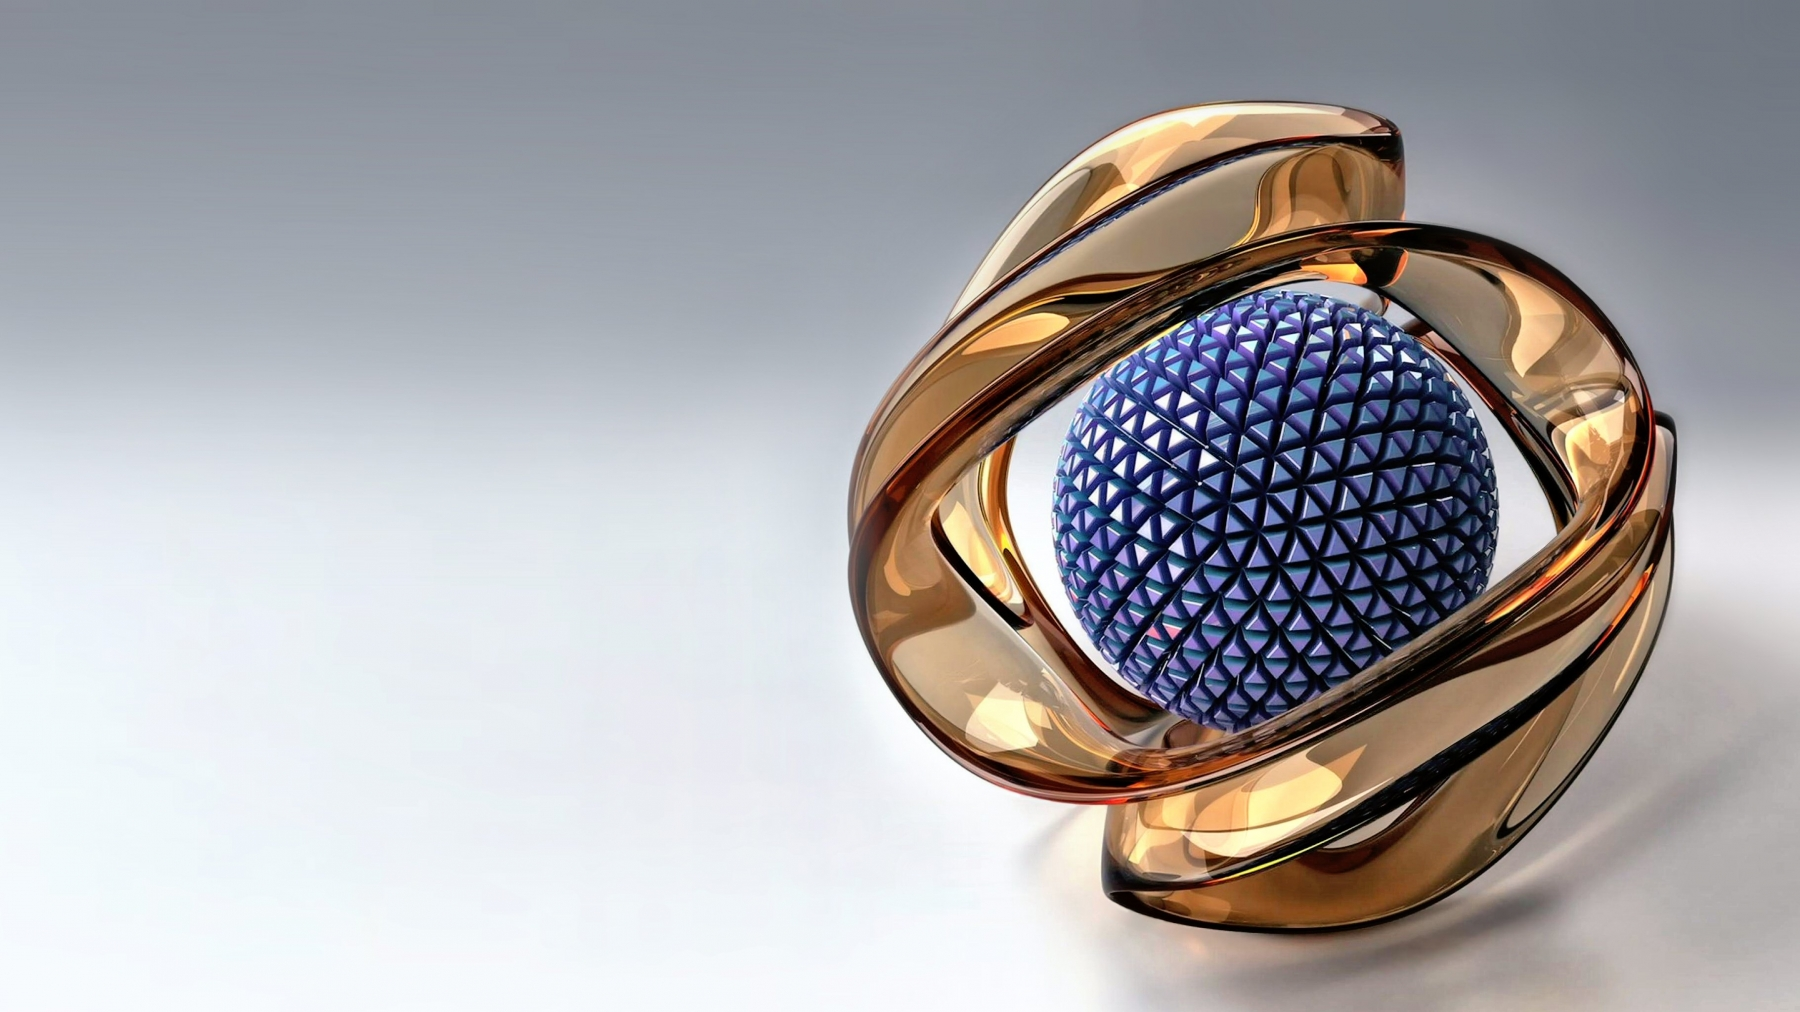 Jewelry Hd Wallpapers And Background Images Yl Computing